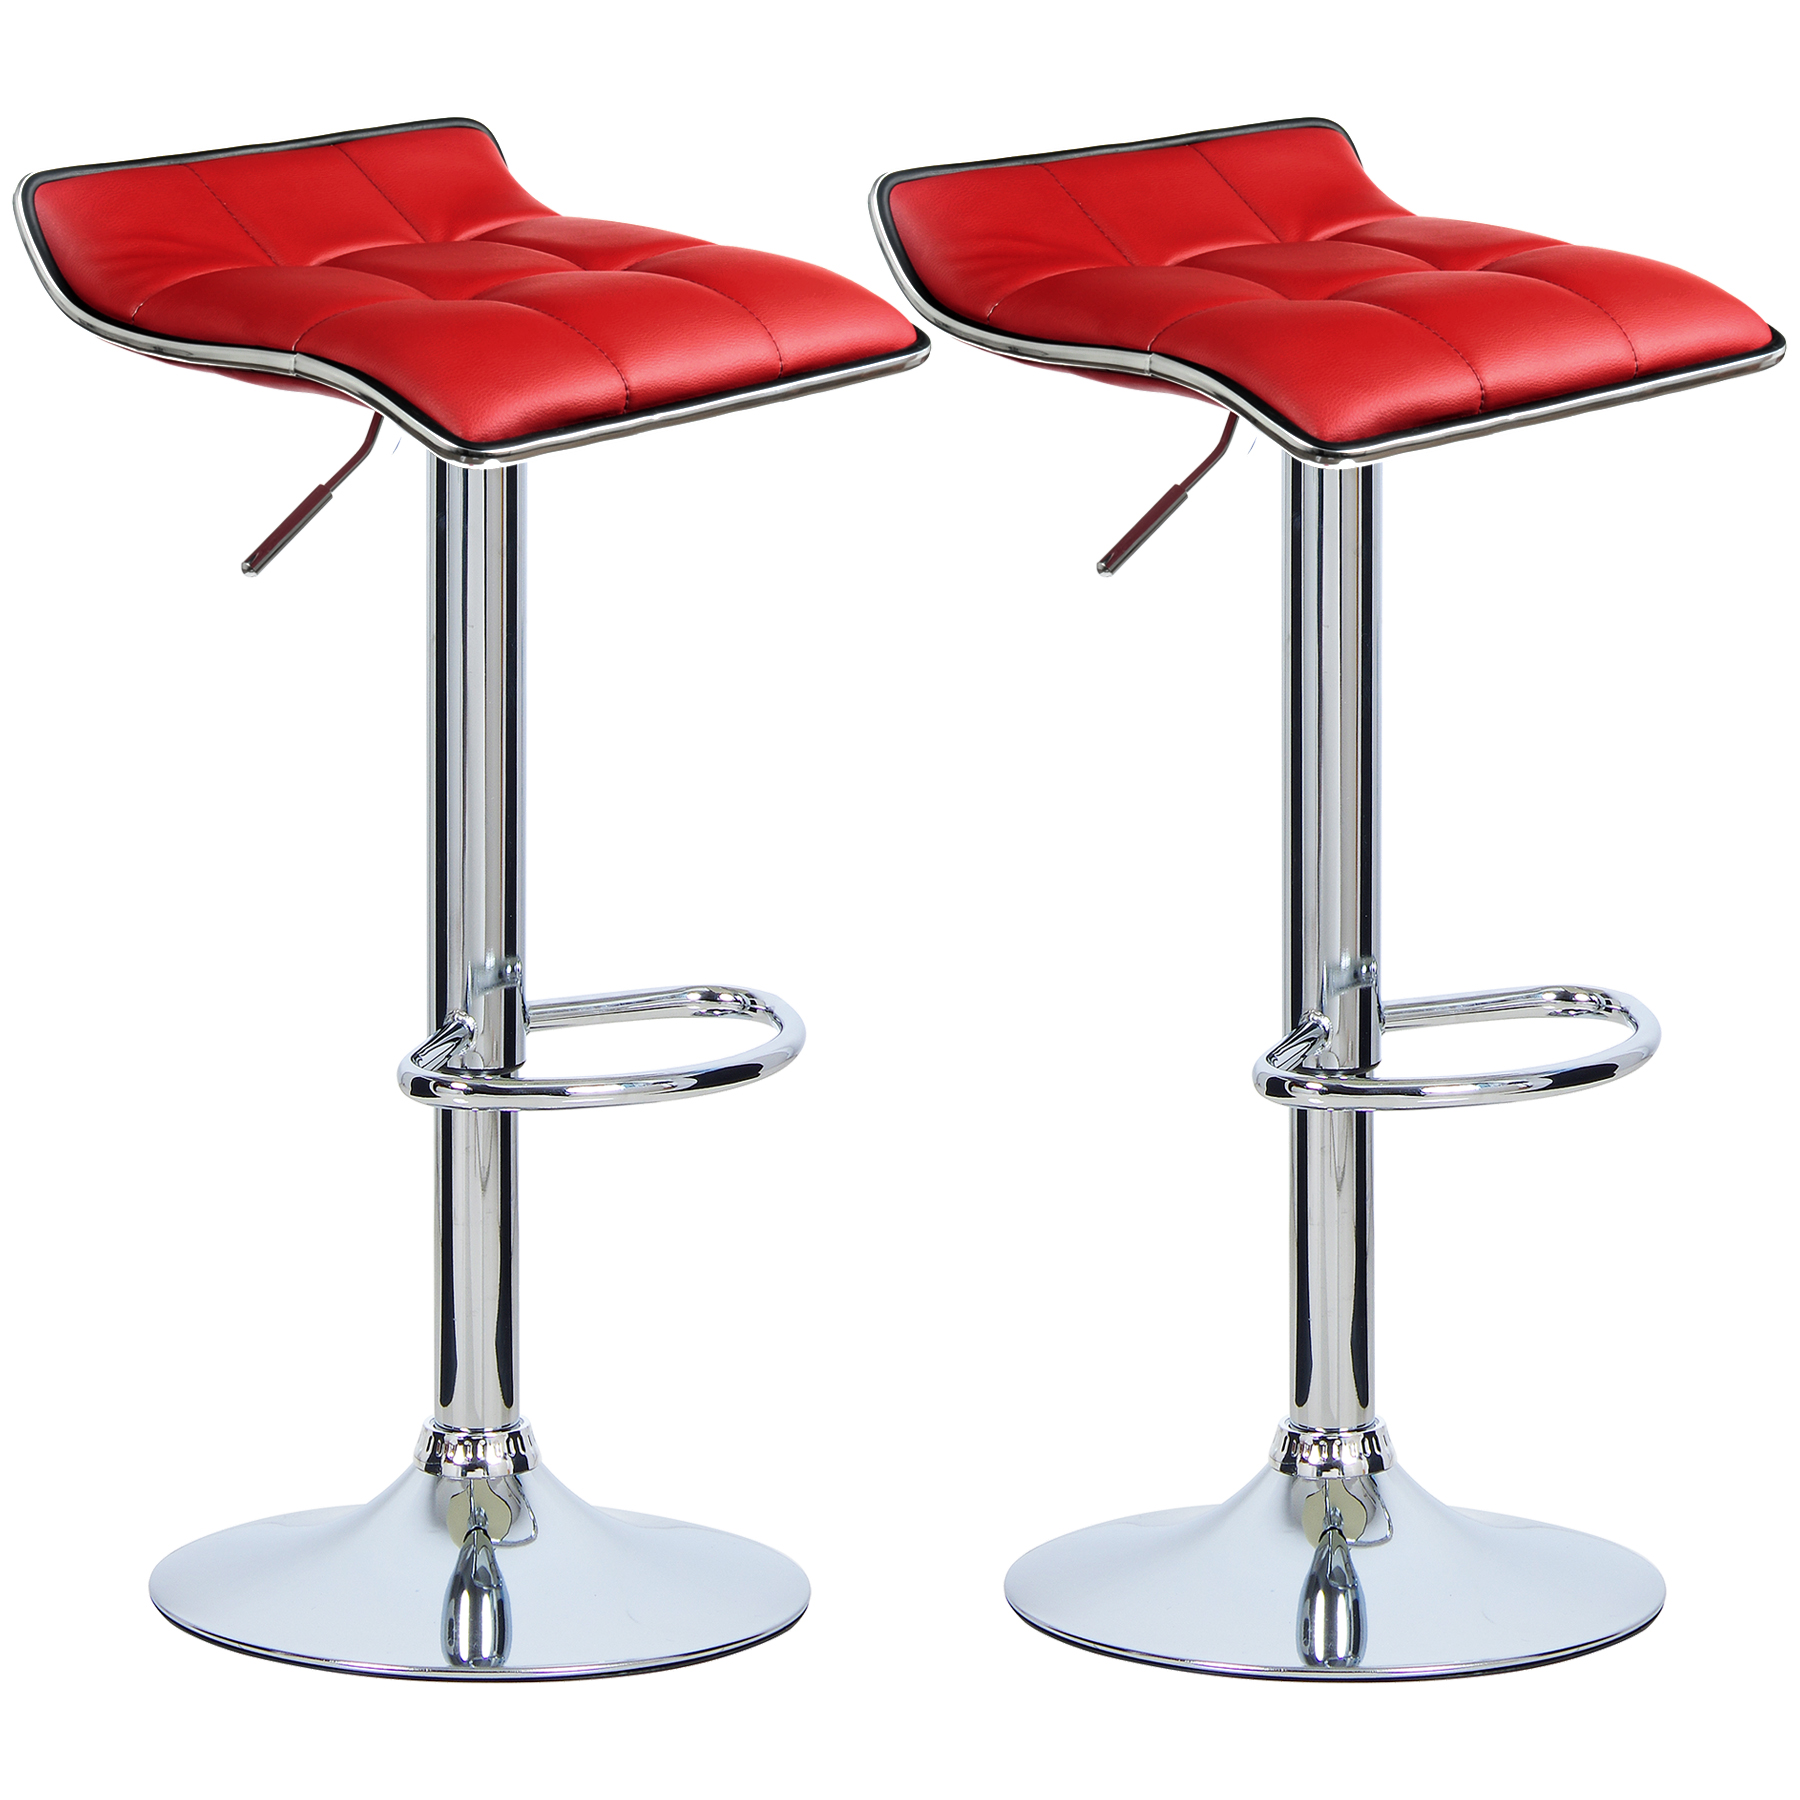 2 x tabouret de bar si ge comptoir chrome similicuir chaise 363 ebay. Black Bedroom Furniture Sets. Home Design Ideas